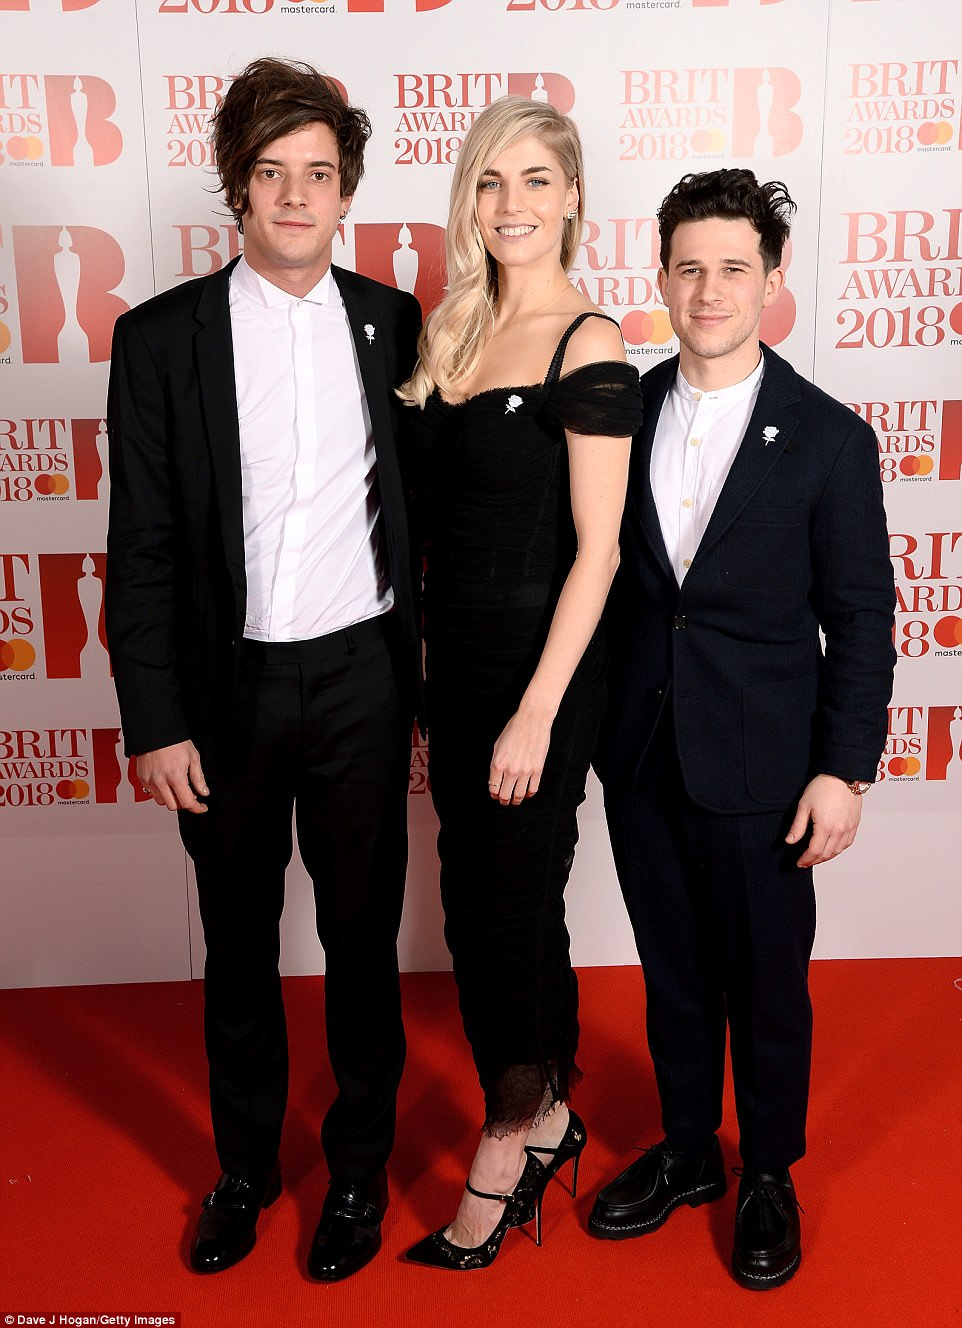 Trio: (L-R) Dot Major, Hannah Reid and Dan Rothman of London Grammar all opted for matching monochrome ensembles